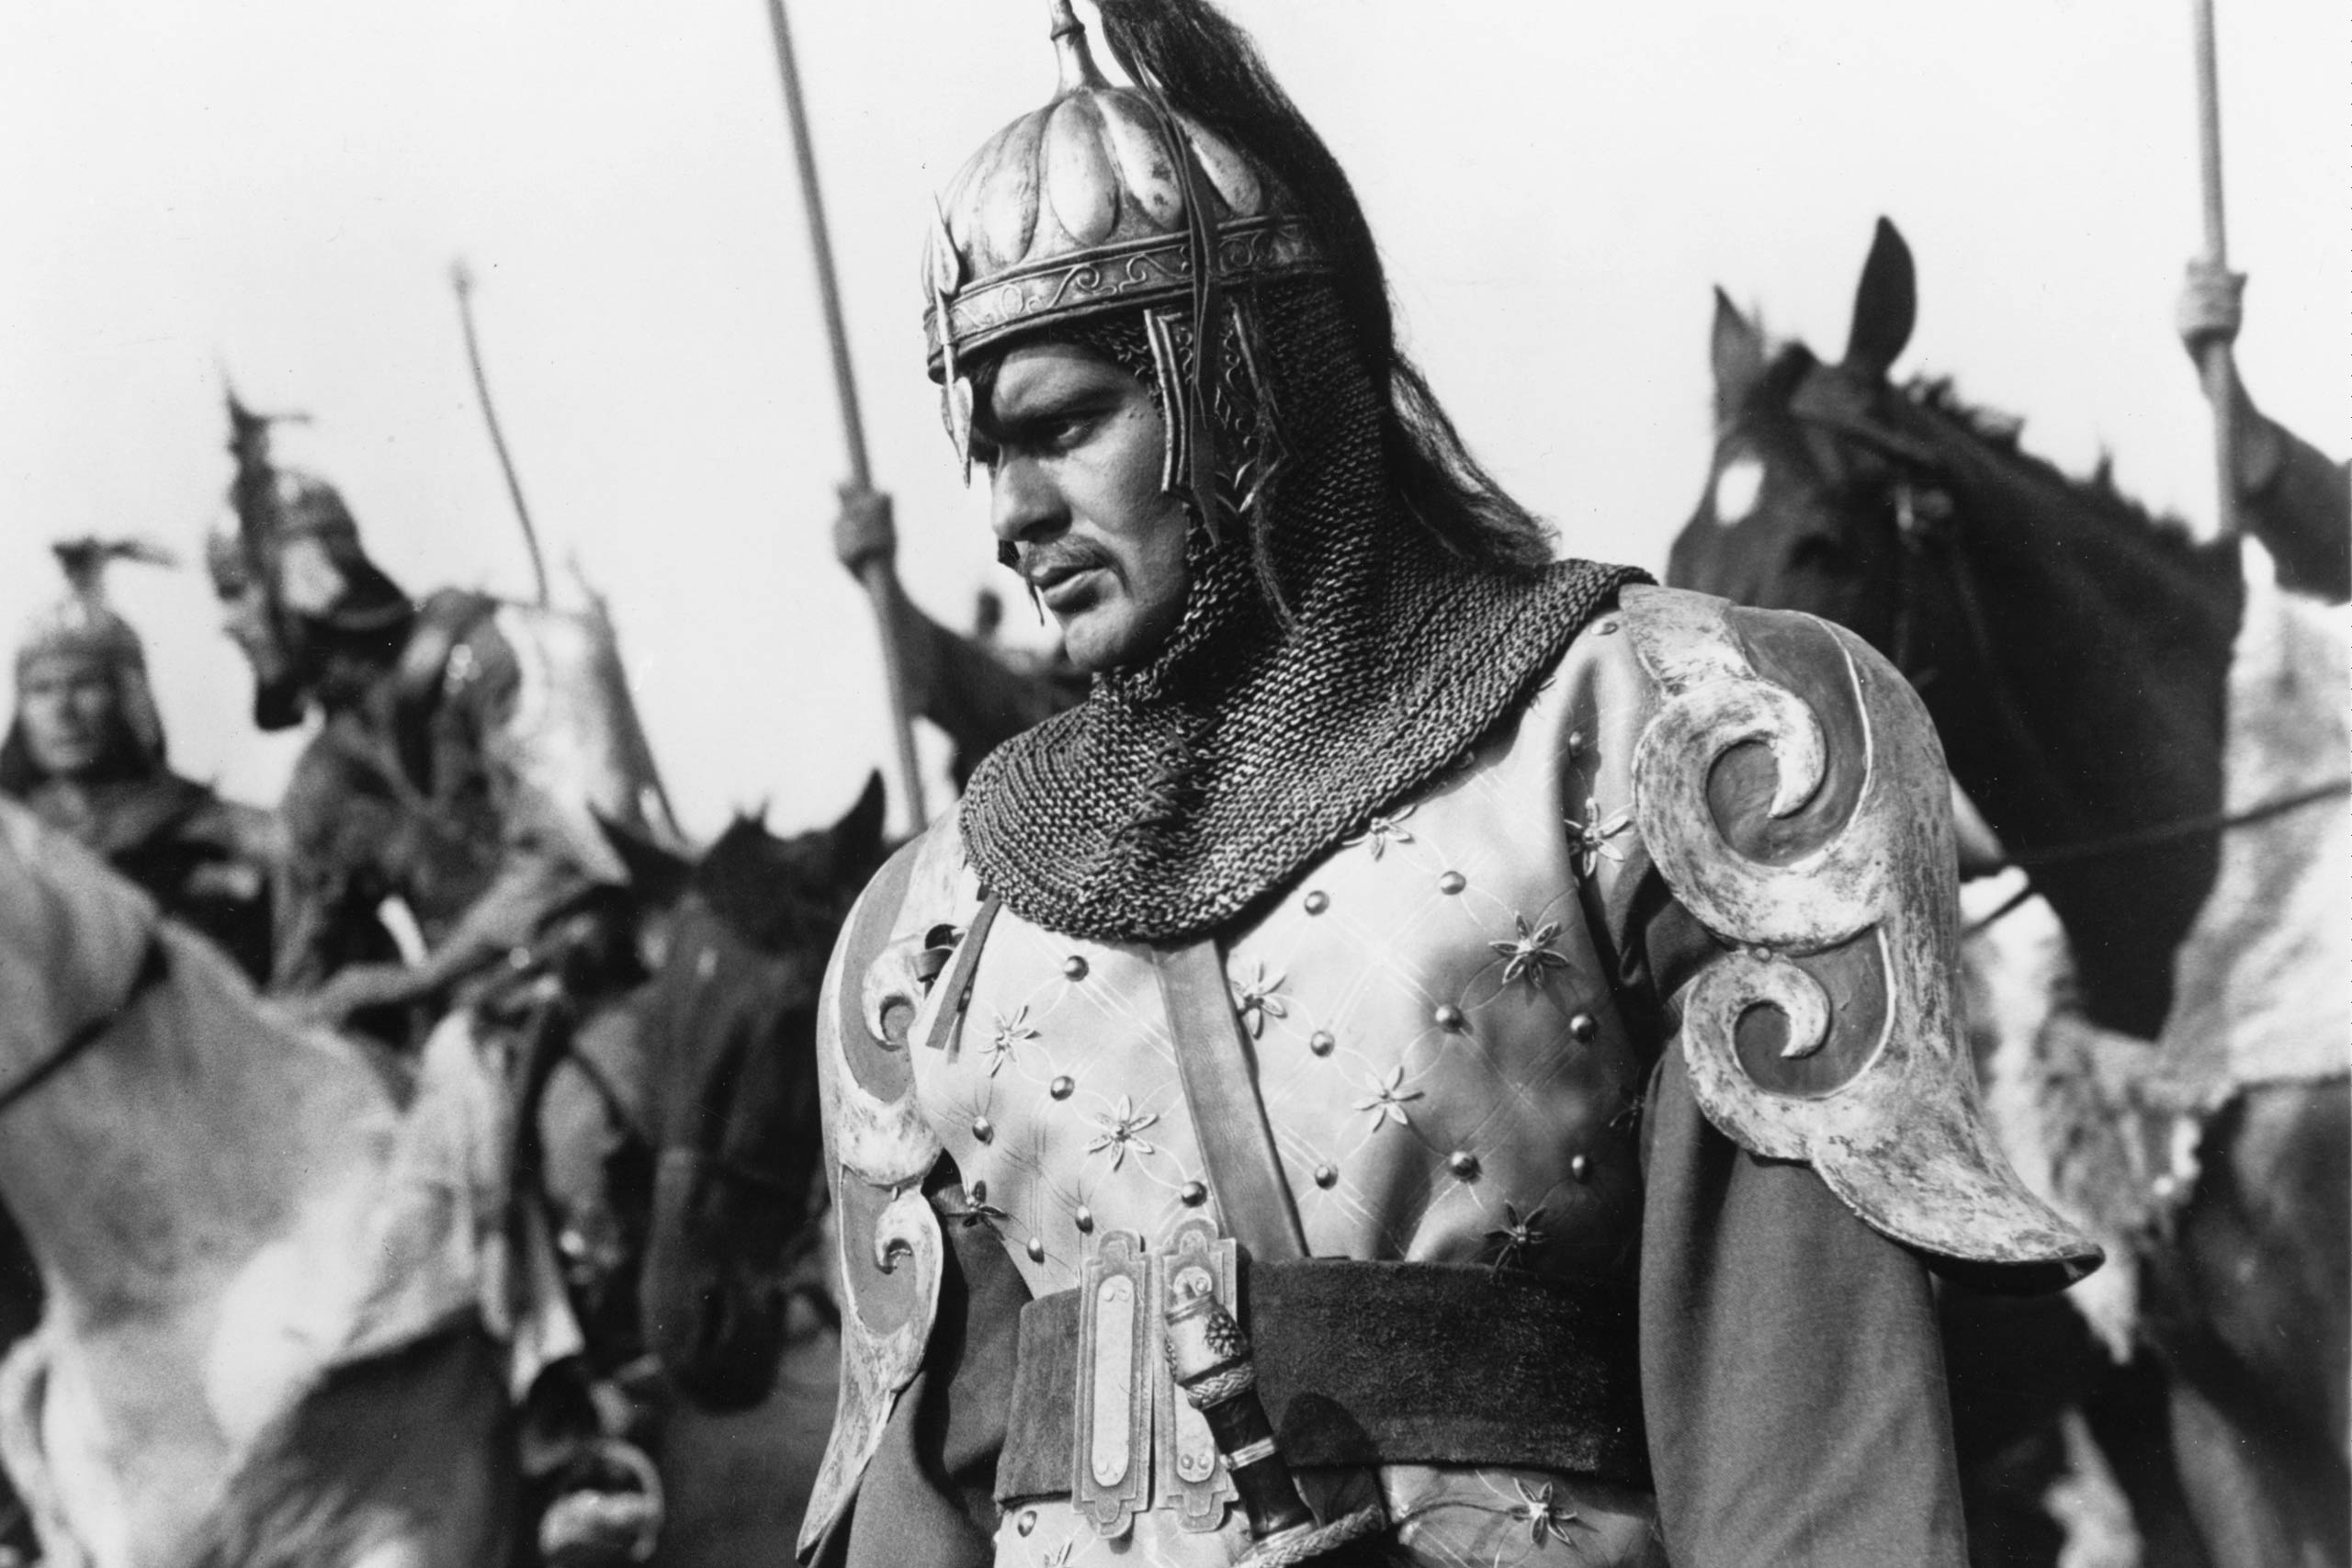 Omar Sharif plays the titular role of Gengis Khan in Gengis Khan, 1965.